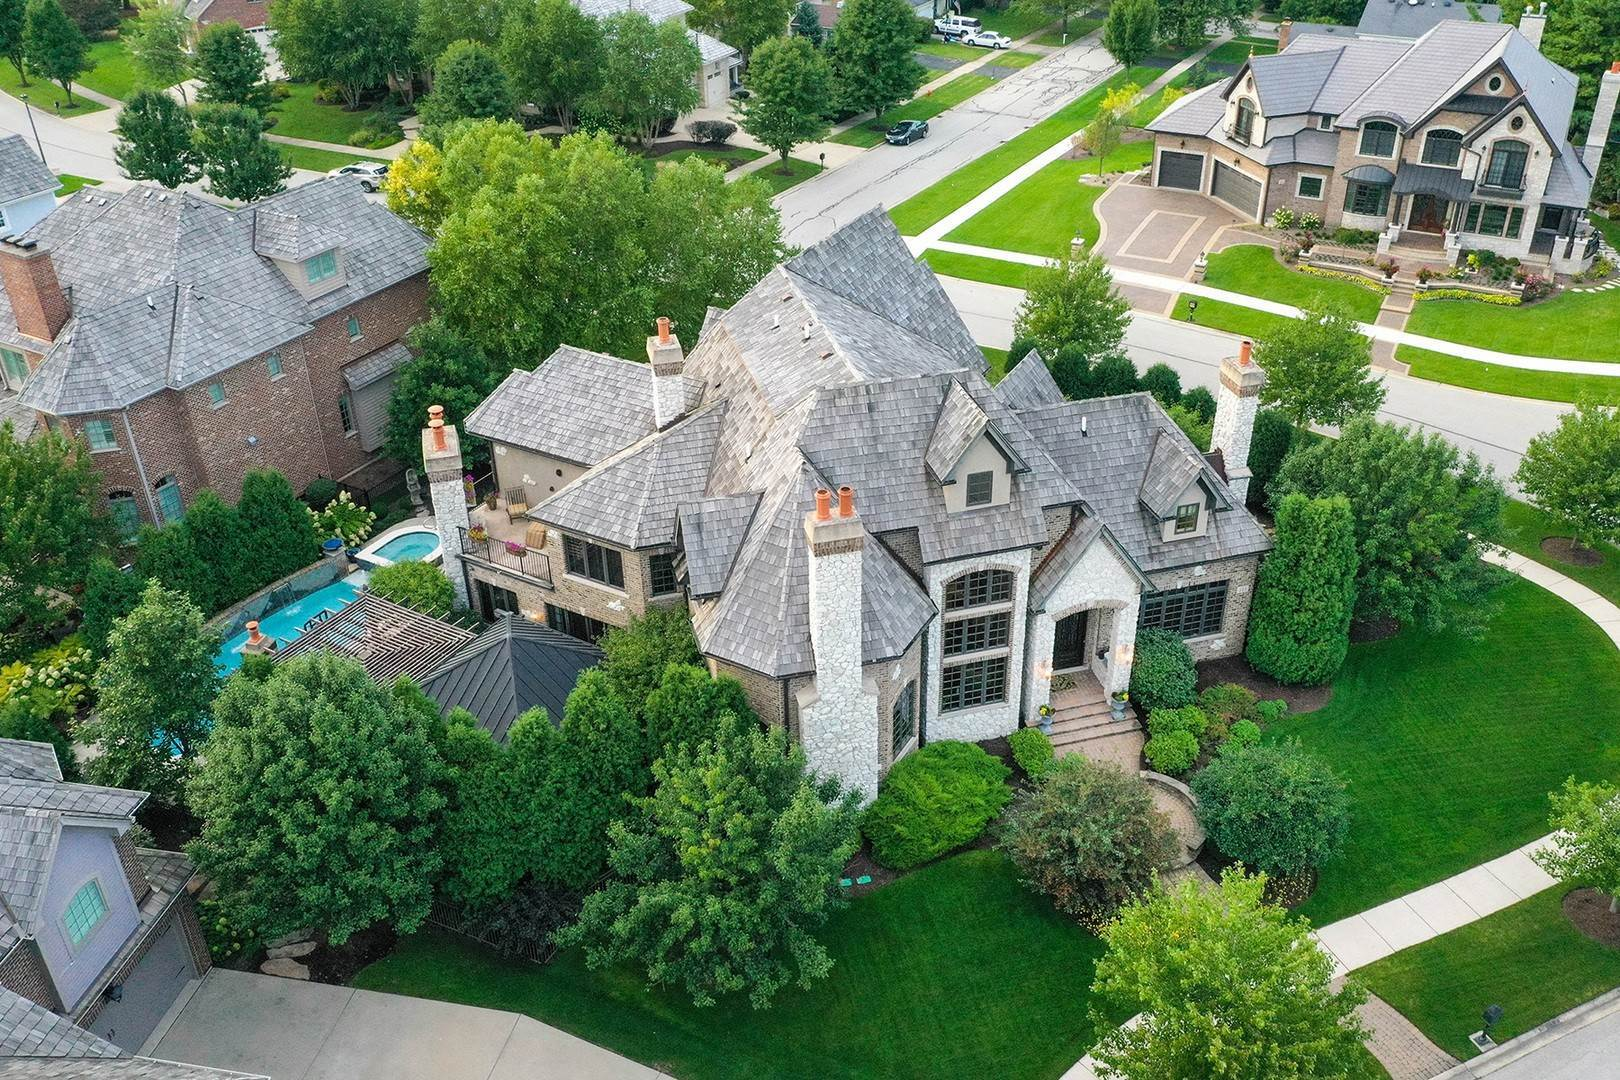 Single Family Homes for Sale at 315 Claremont Court Naperville, Illinois 60540 United States